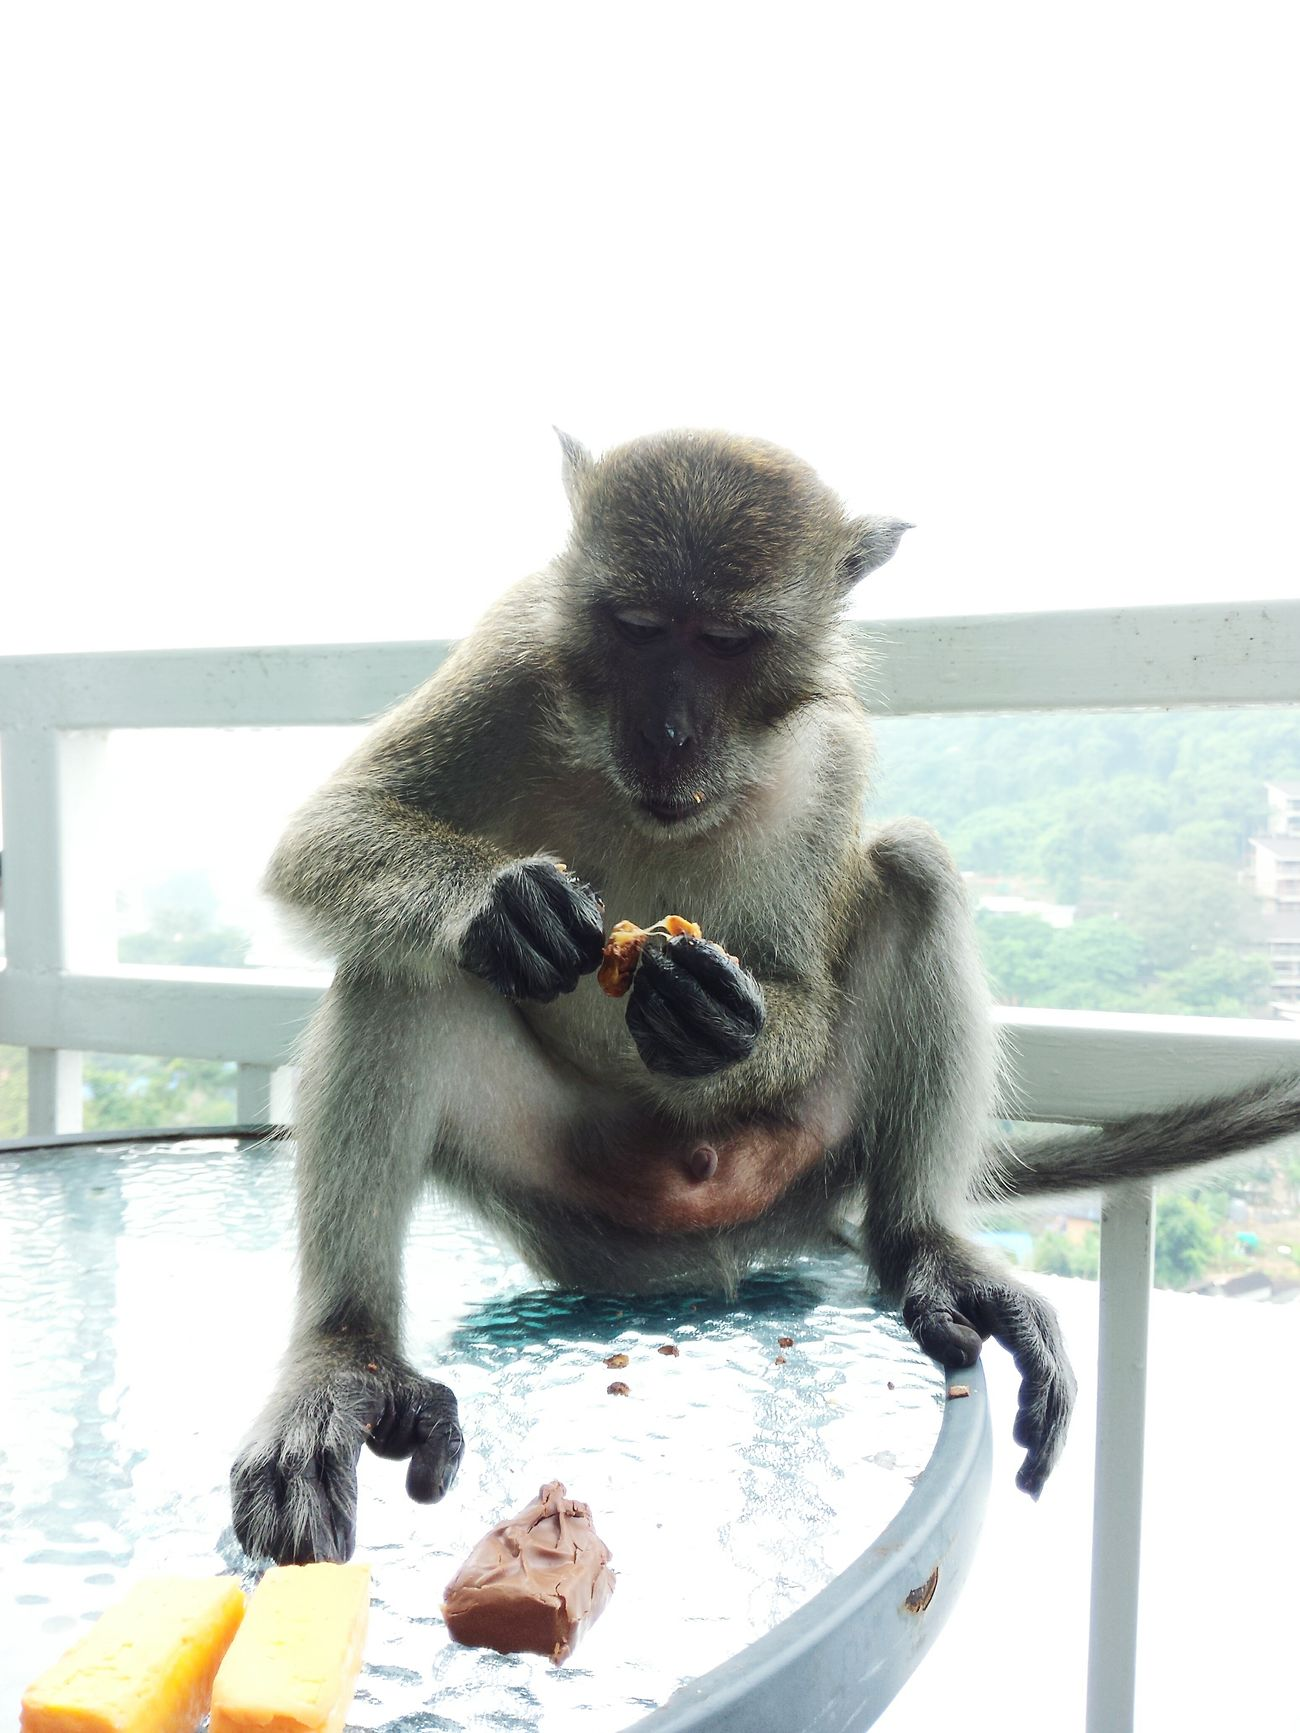 monkey steal food in my room and eating on my table!Monkey Stealing